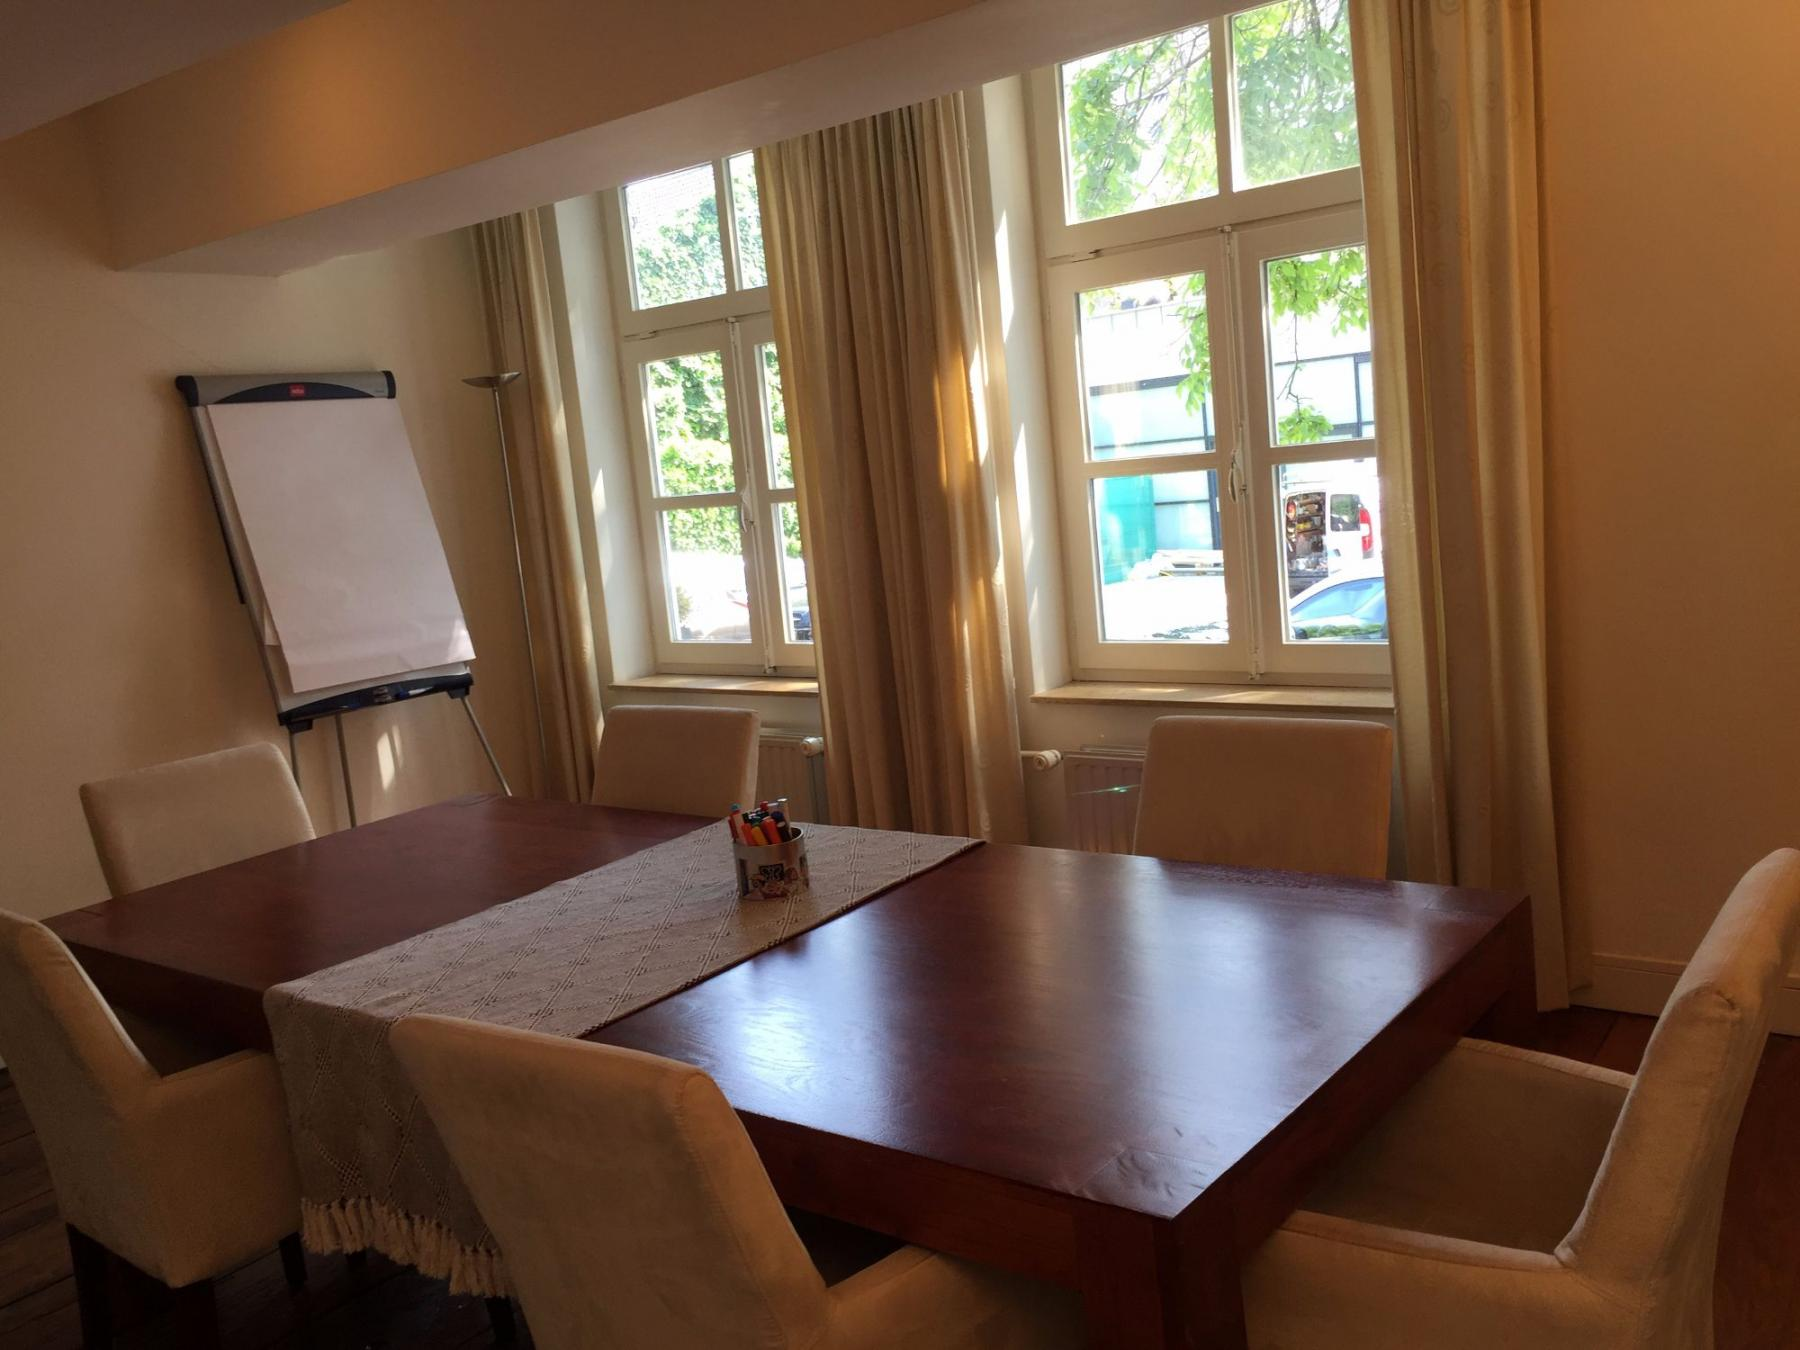 Meeting room in Maastricht with table and chairs